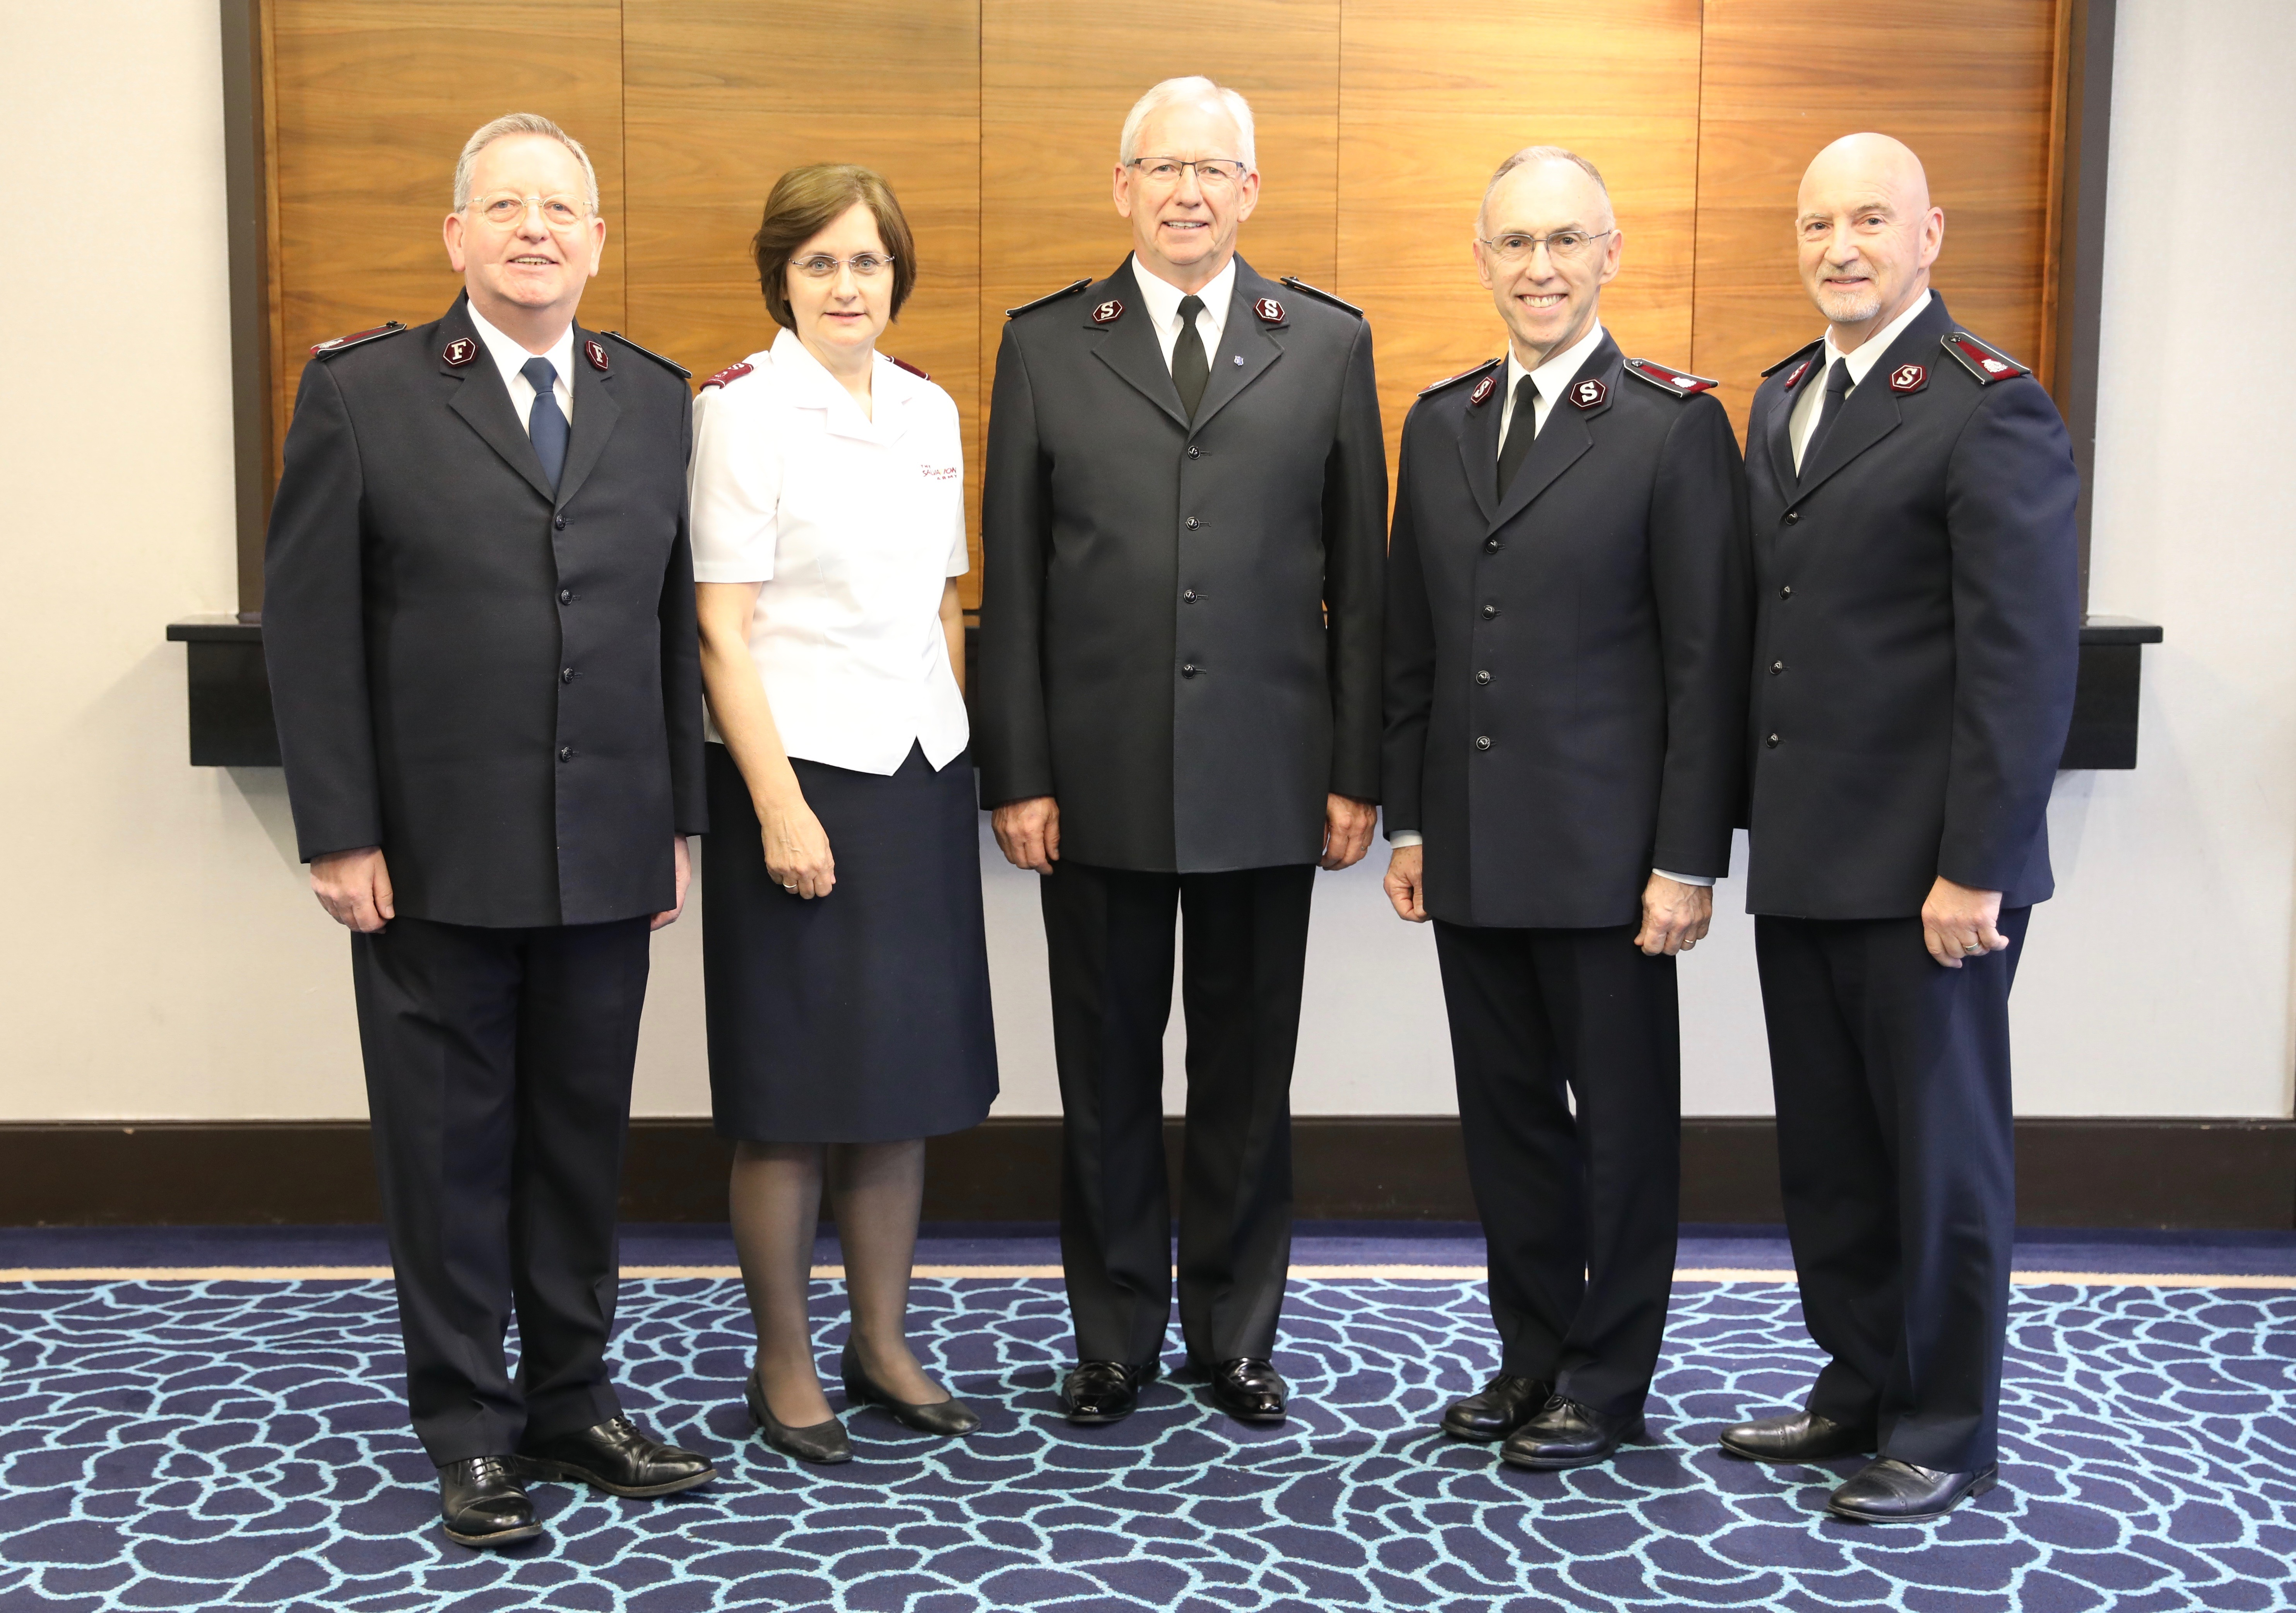 Candidates for General